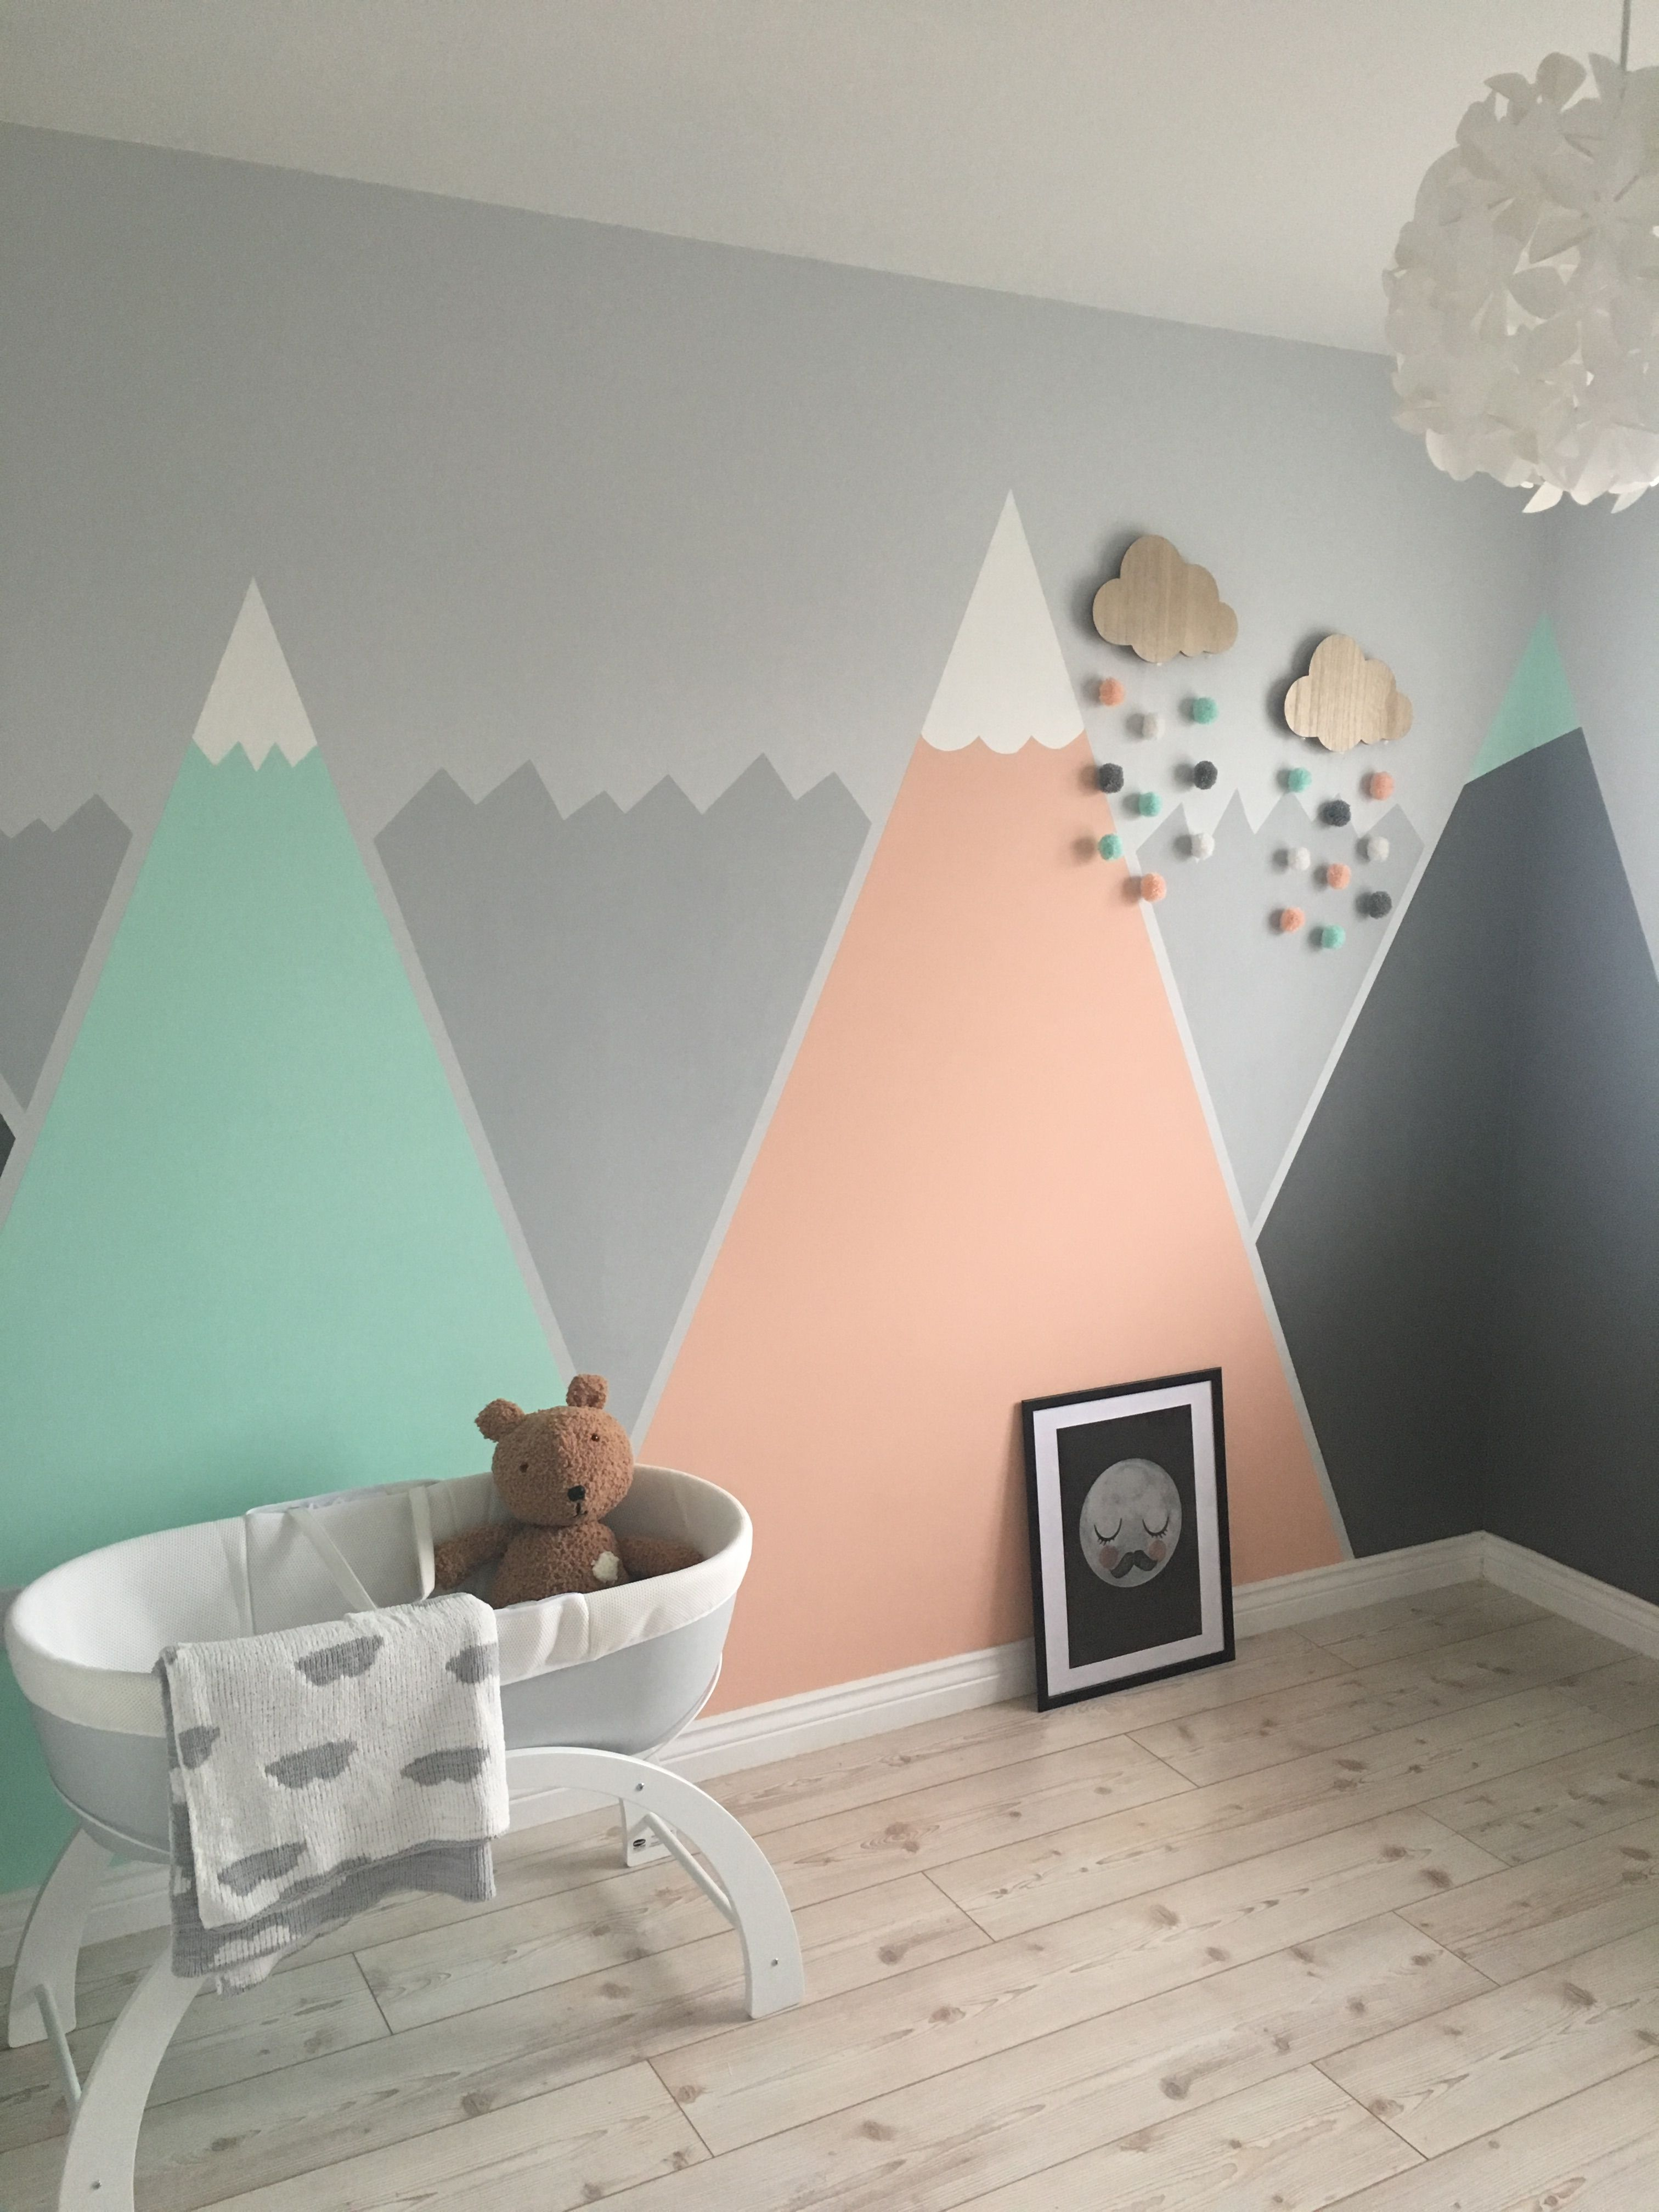 Baby Girl Bedroom Wallpaper Our Girl S Nursery So Far Peach Grey And Mint Mountains